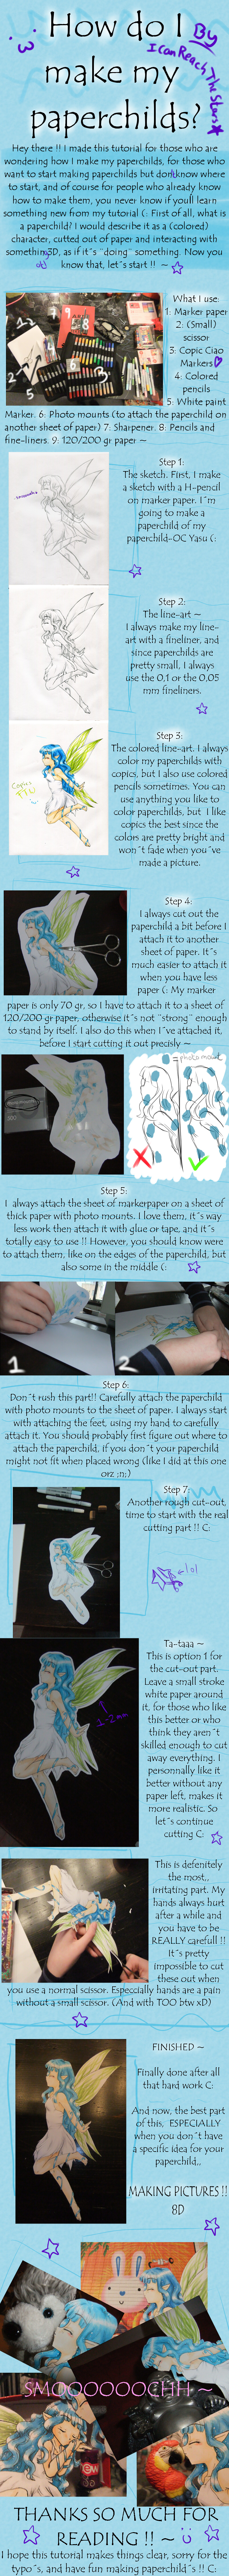 Paperchild tutorial by ICanReachTheStars